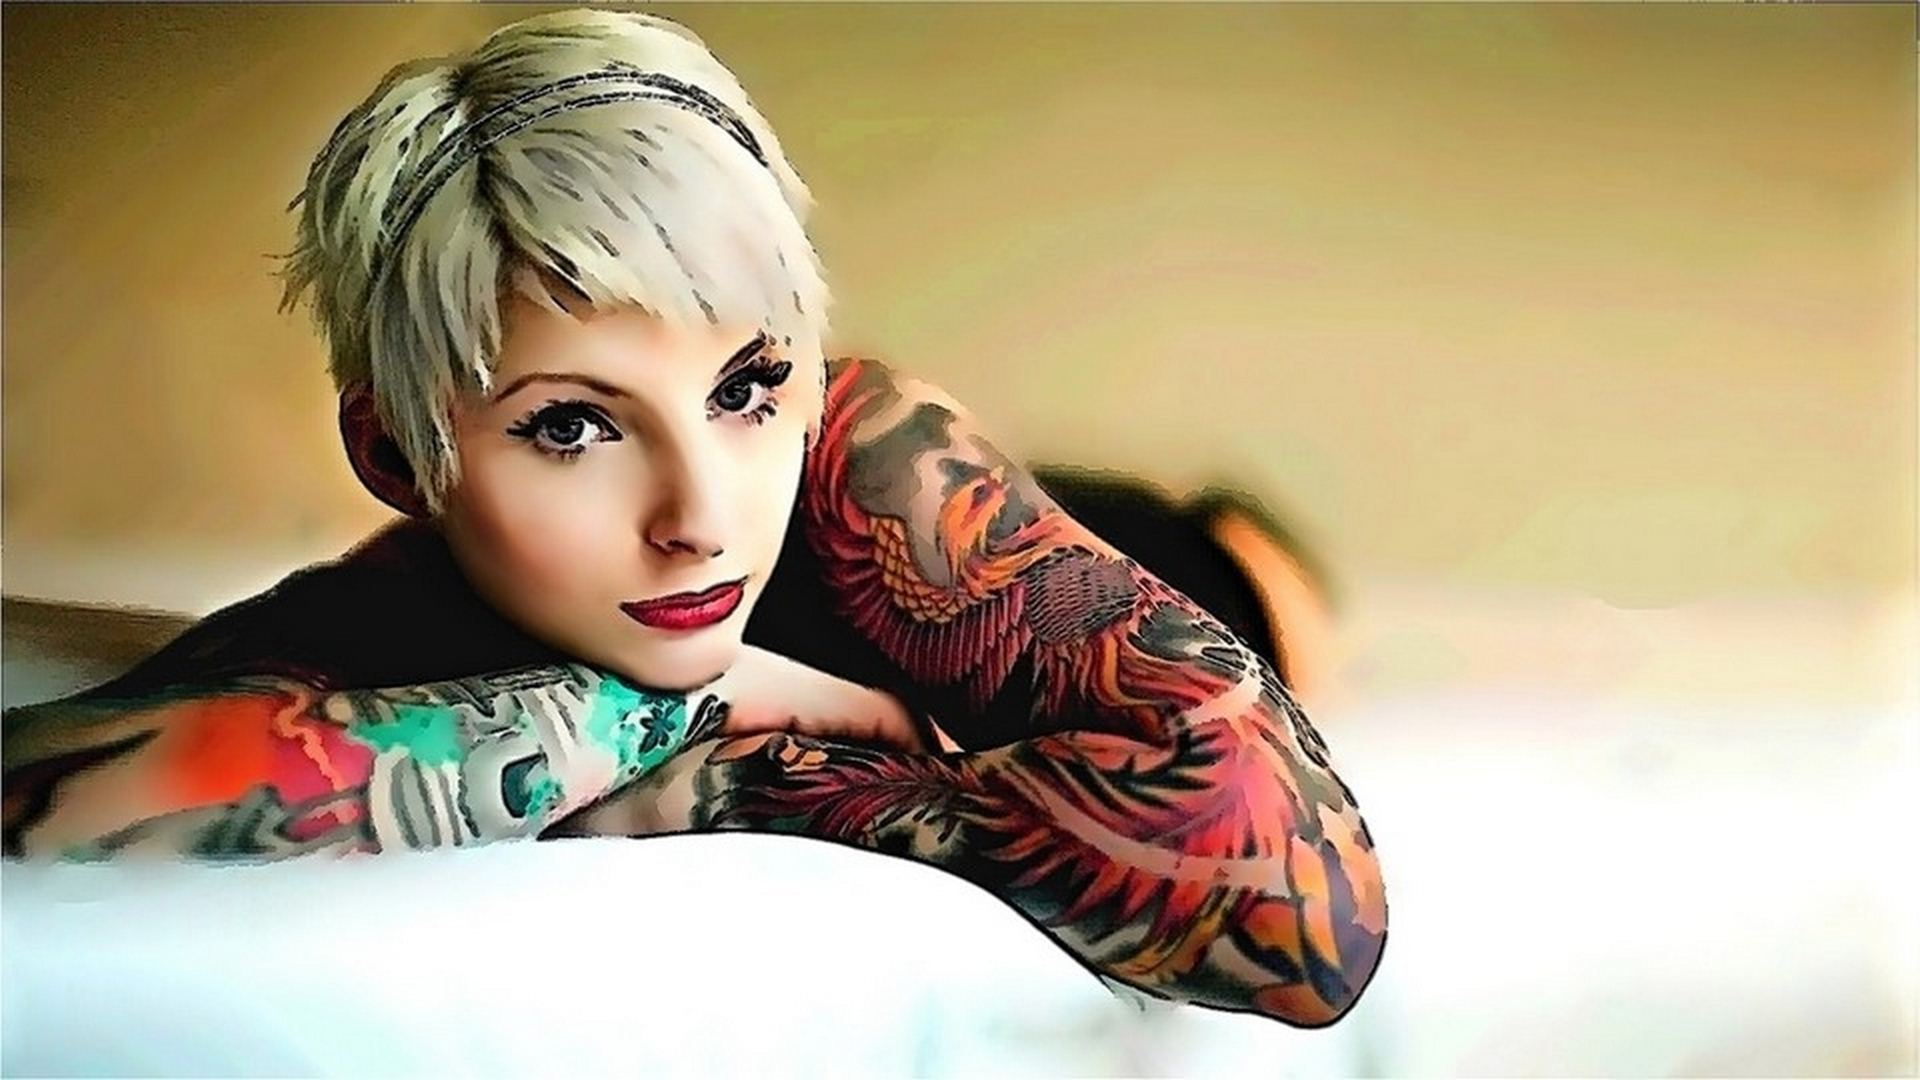 tattoo girl wallpapers high quality download free